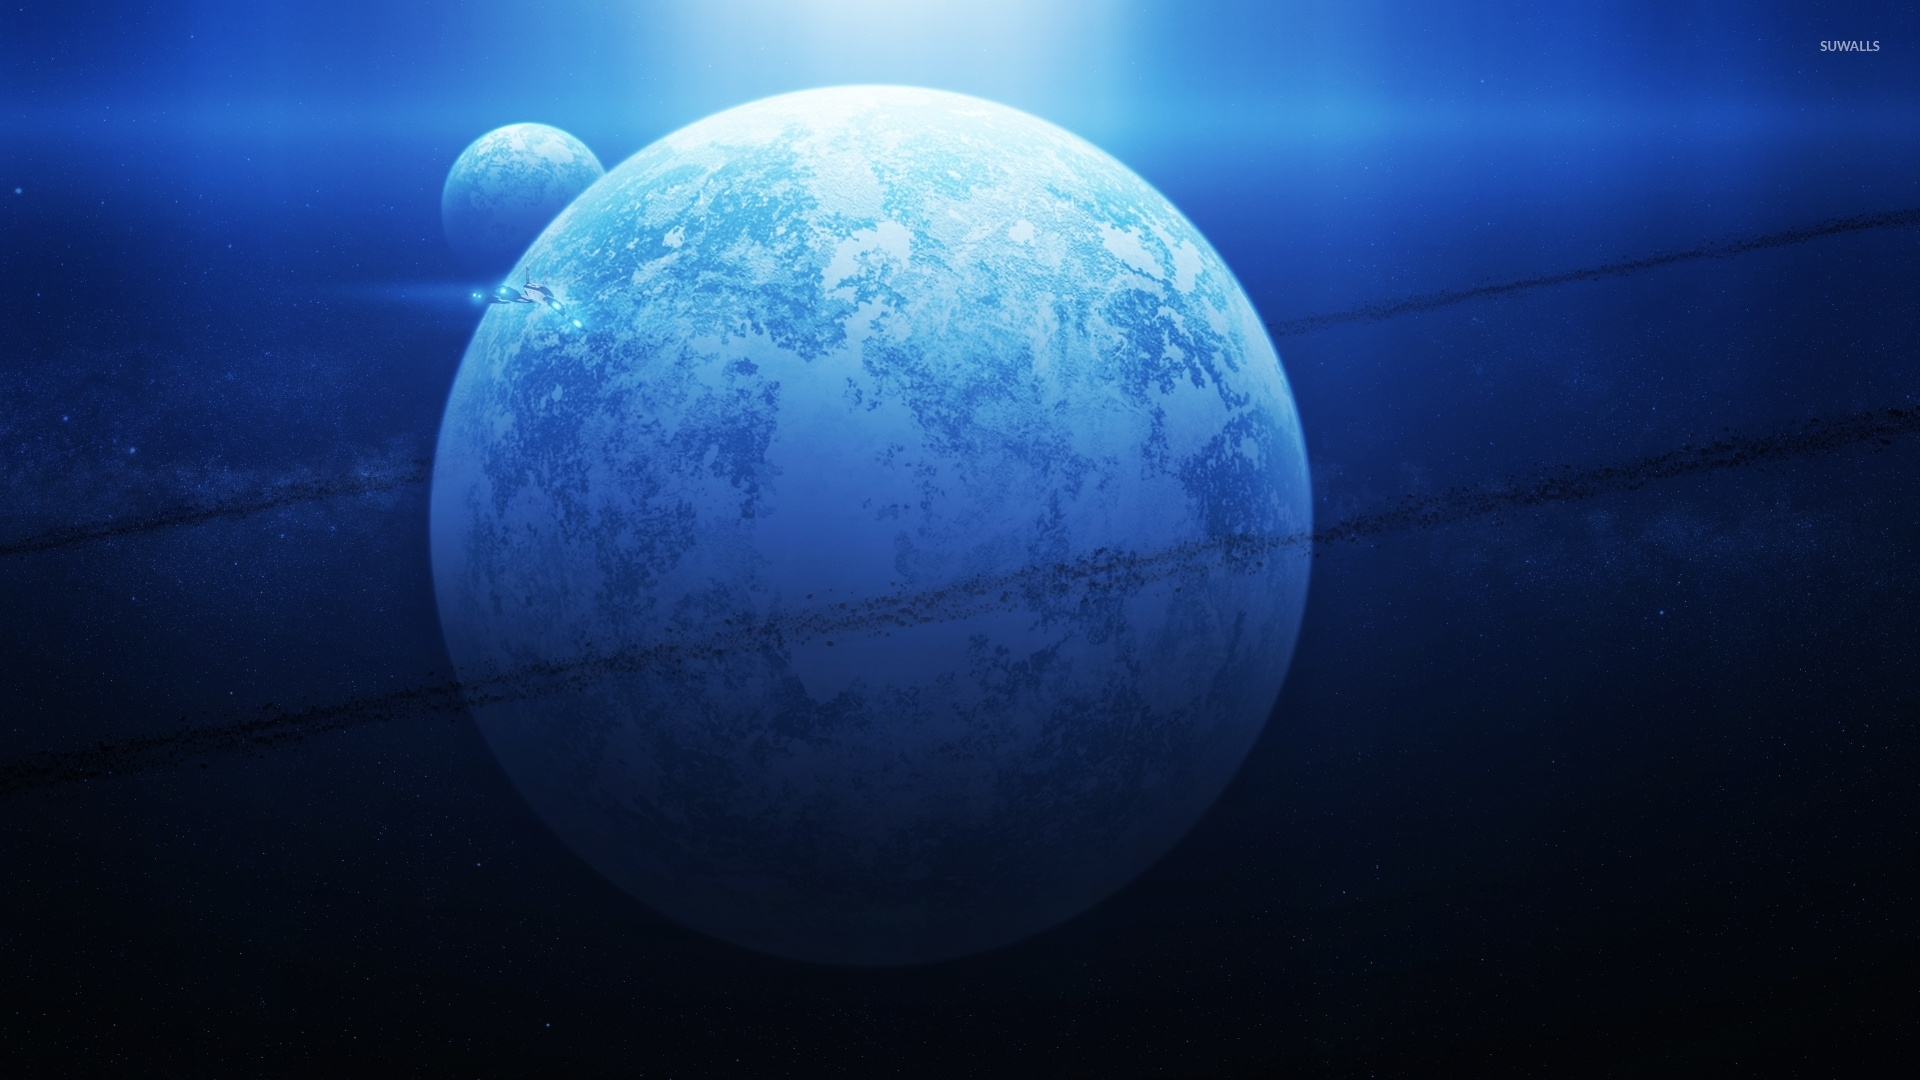 Asteroid belt surrounding the blue planet wallpapers